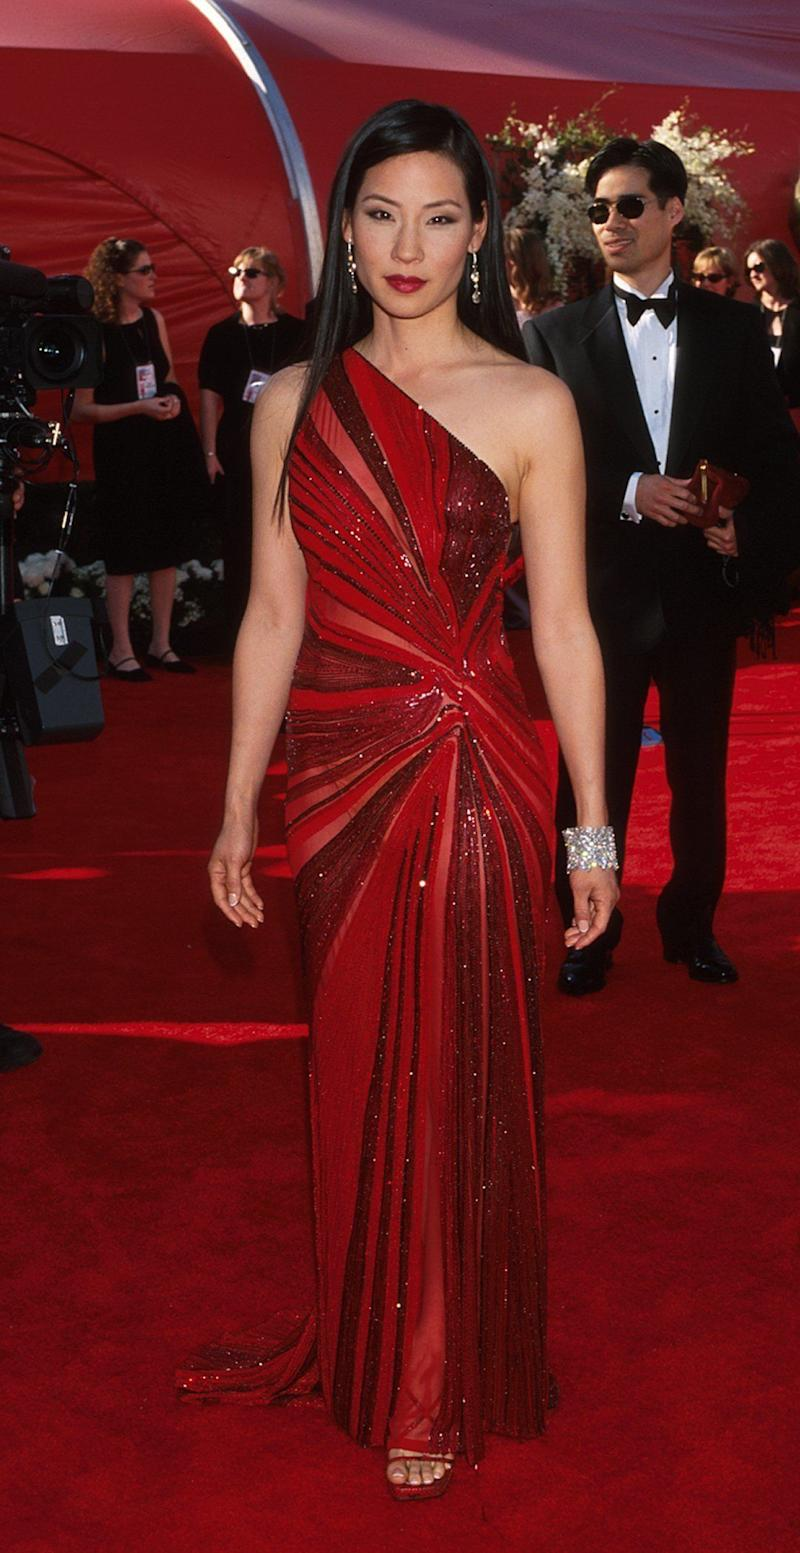 In a Versace gownat the 72nd annual Academy Awards in Los Angeles, March 26, 2000.